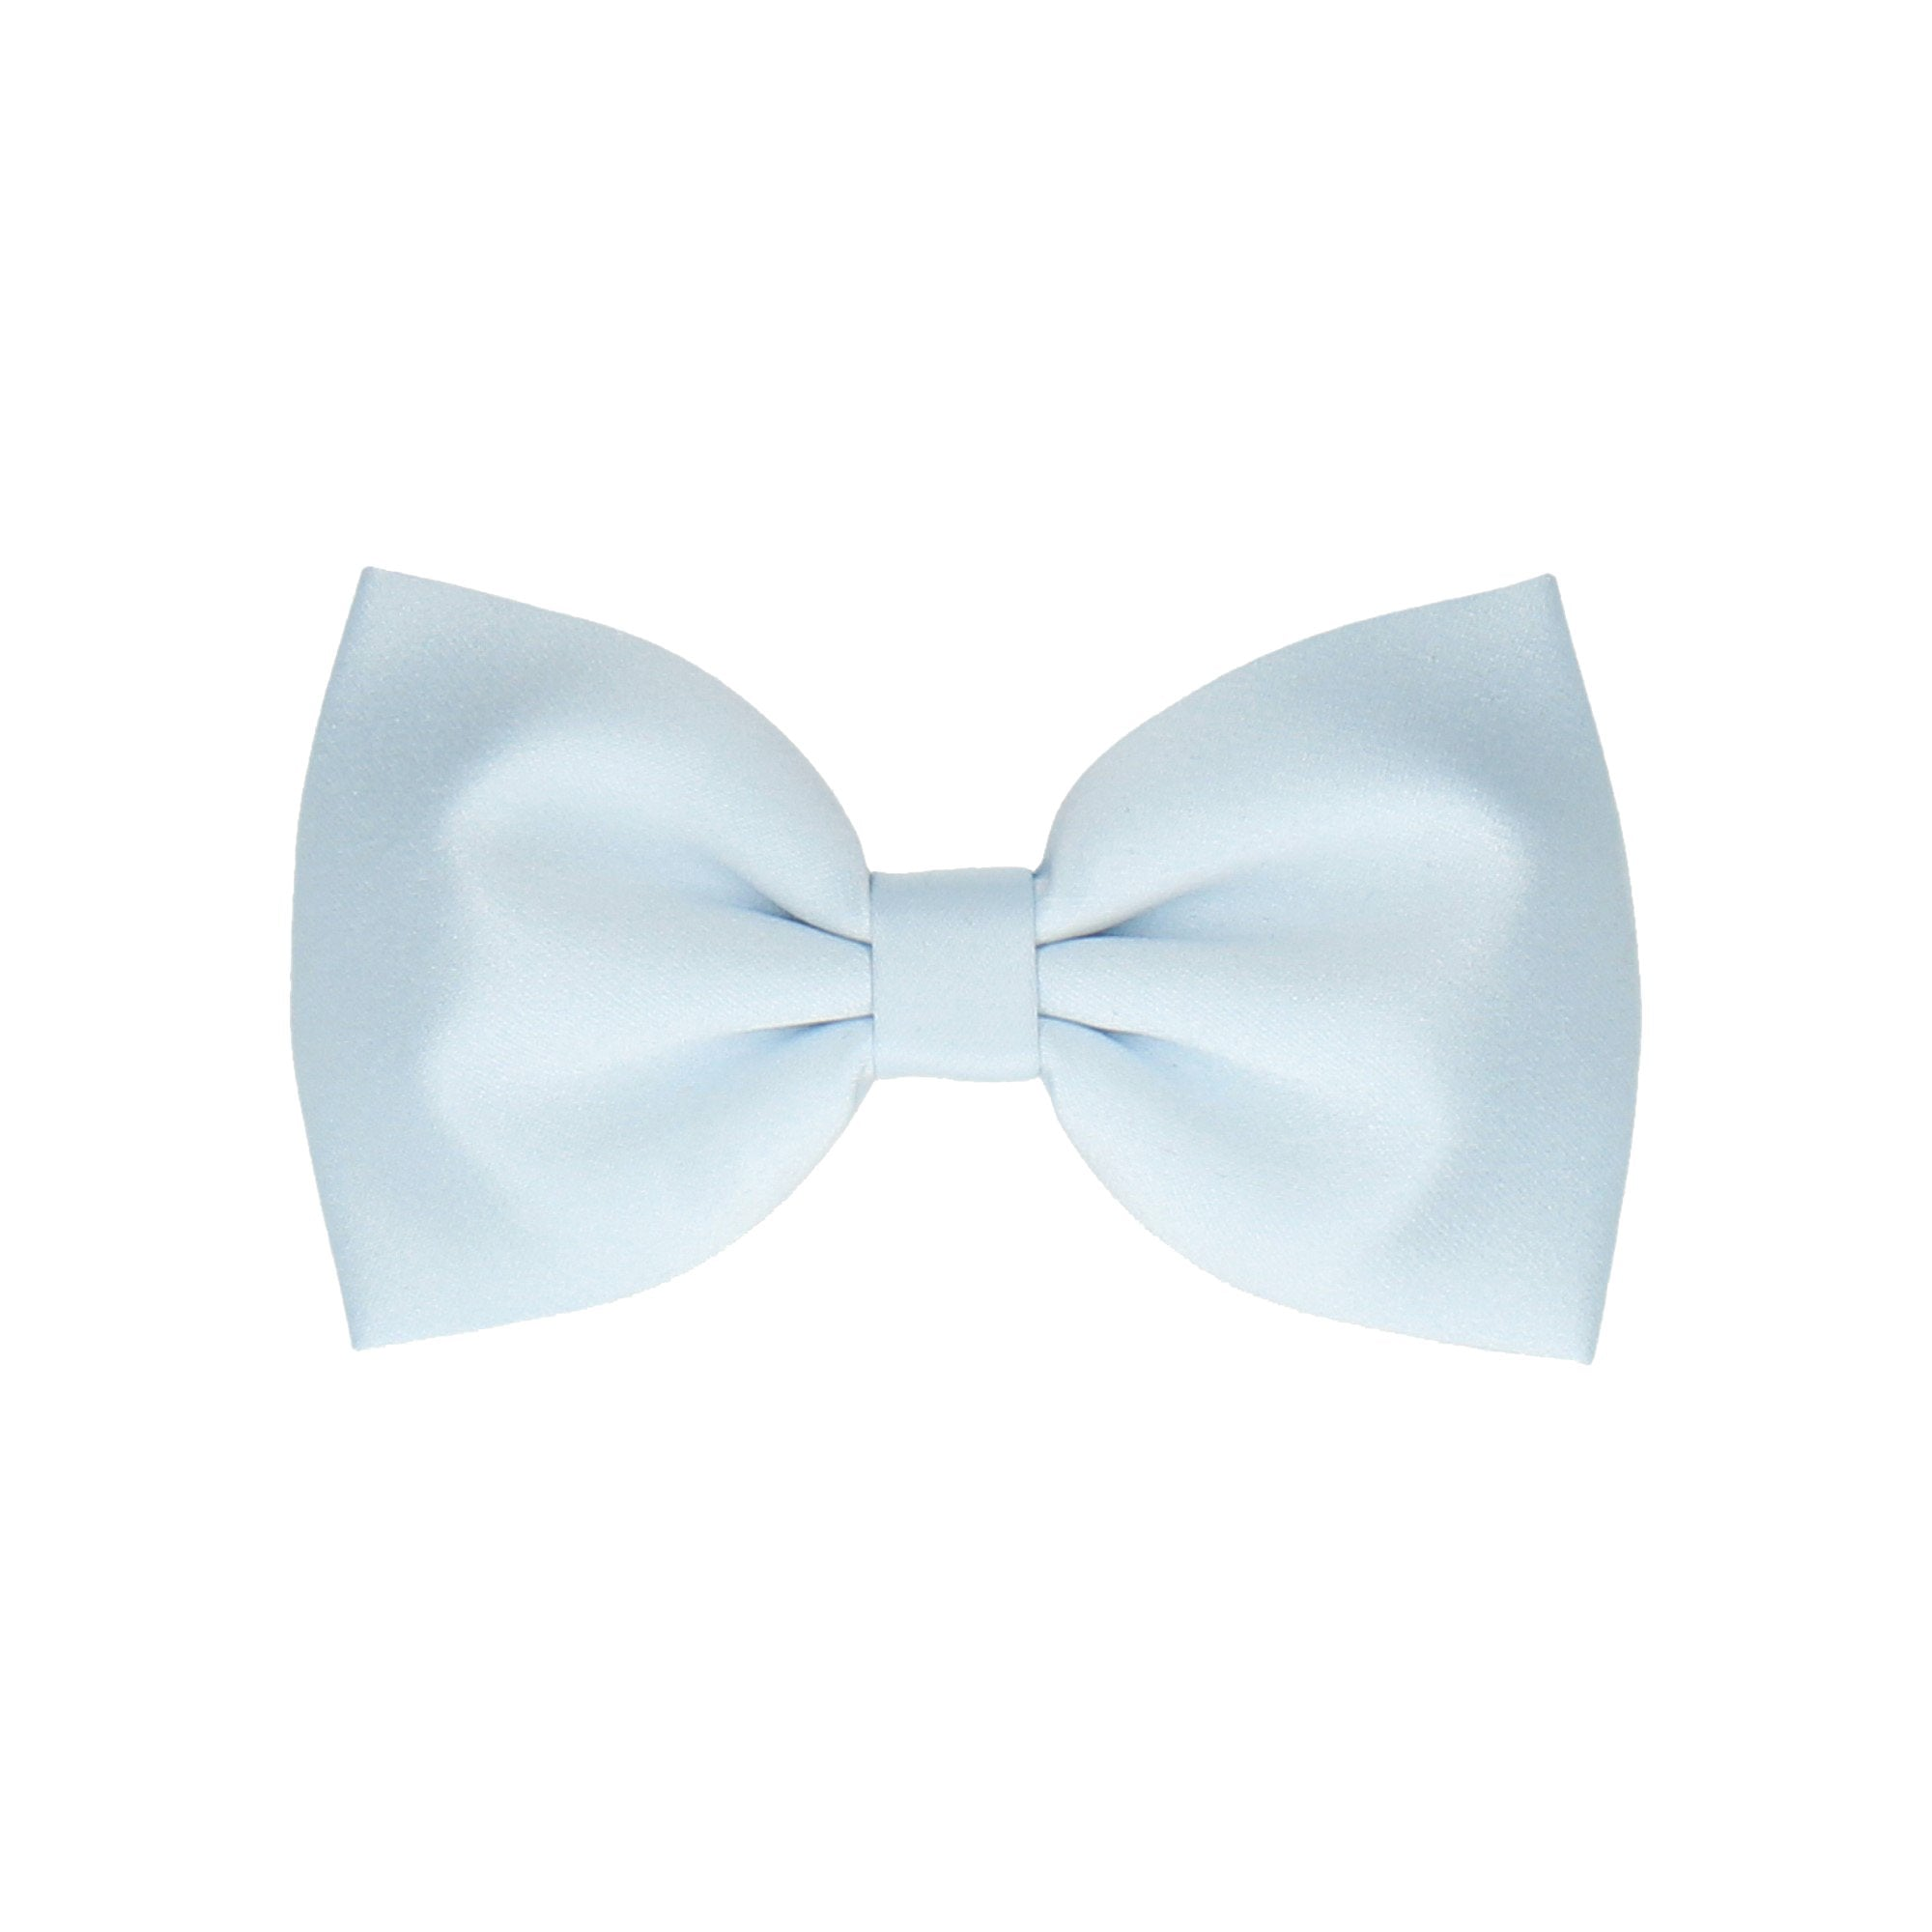 Satin in Ice Blue (Child's Bow Tie)